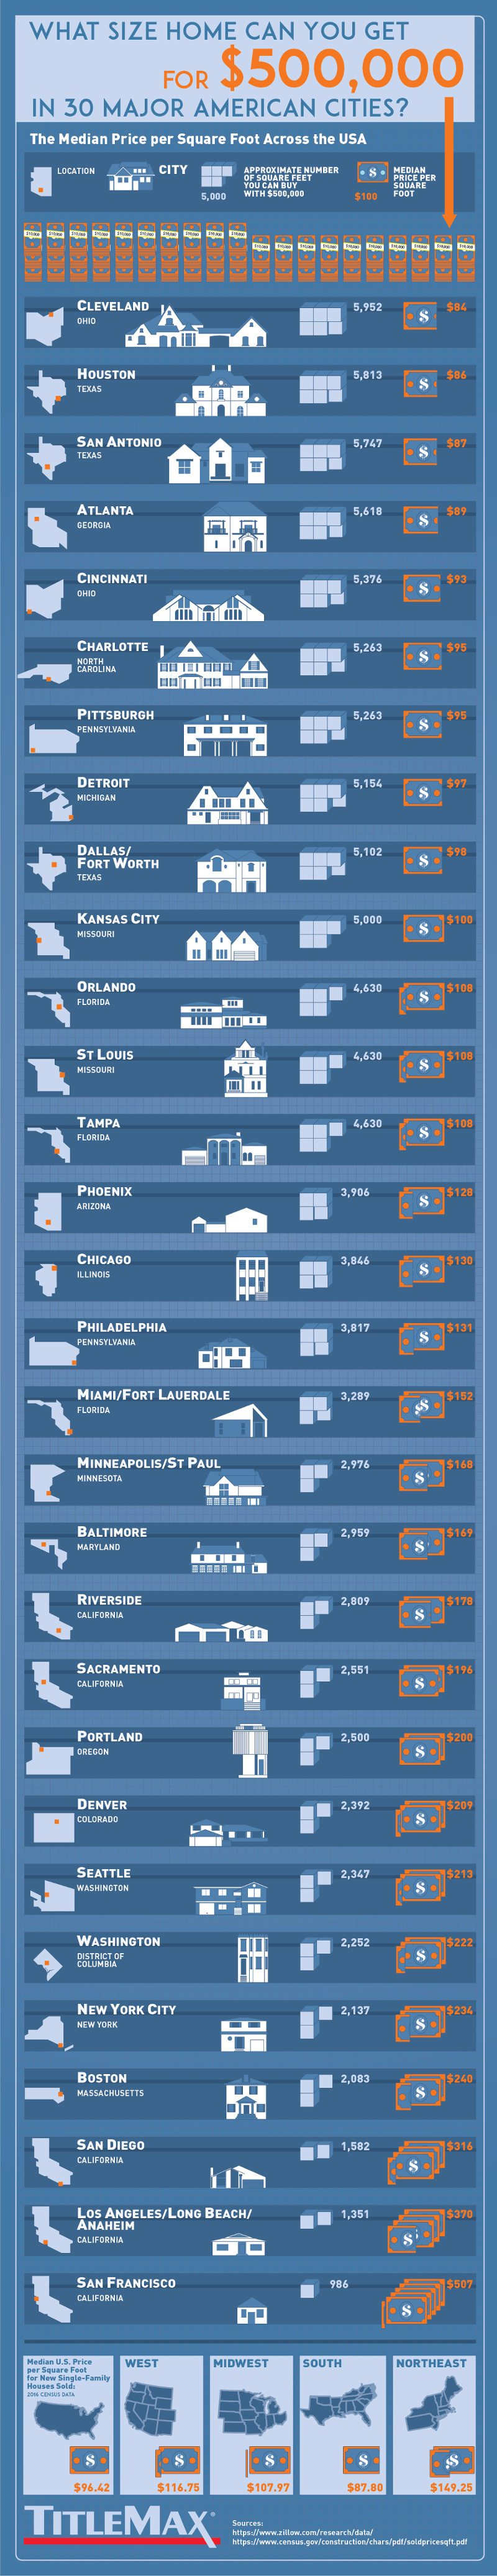 What Size Home Can You Get for $500K in 30 Major American Cities? – TitleMax.com – Infographic